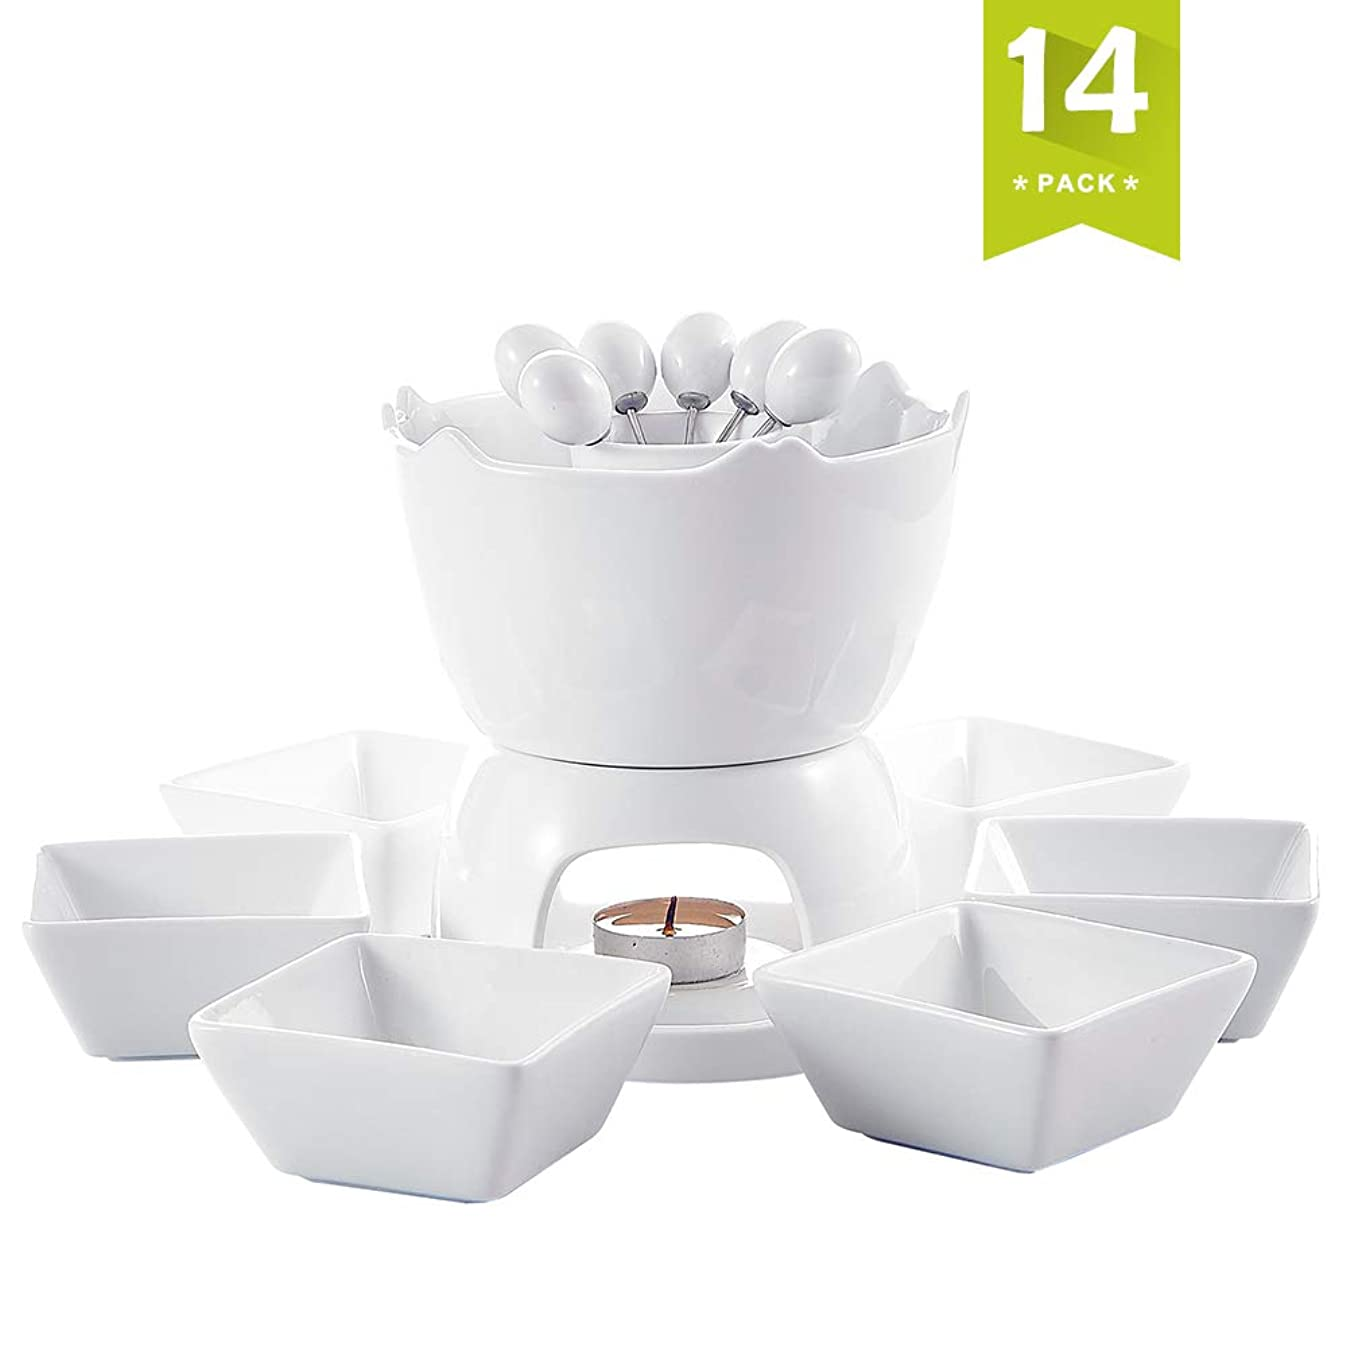 Malacasa FAVOR-003 Two-layer Ceramic Porcelain Tealight Candle Cheese Butter Chocolate Fondue Set with 6 Dipping Bowls 6 Forks, 9 x 7 x 6 inches, Ivory White